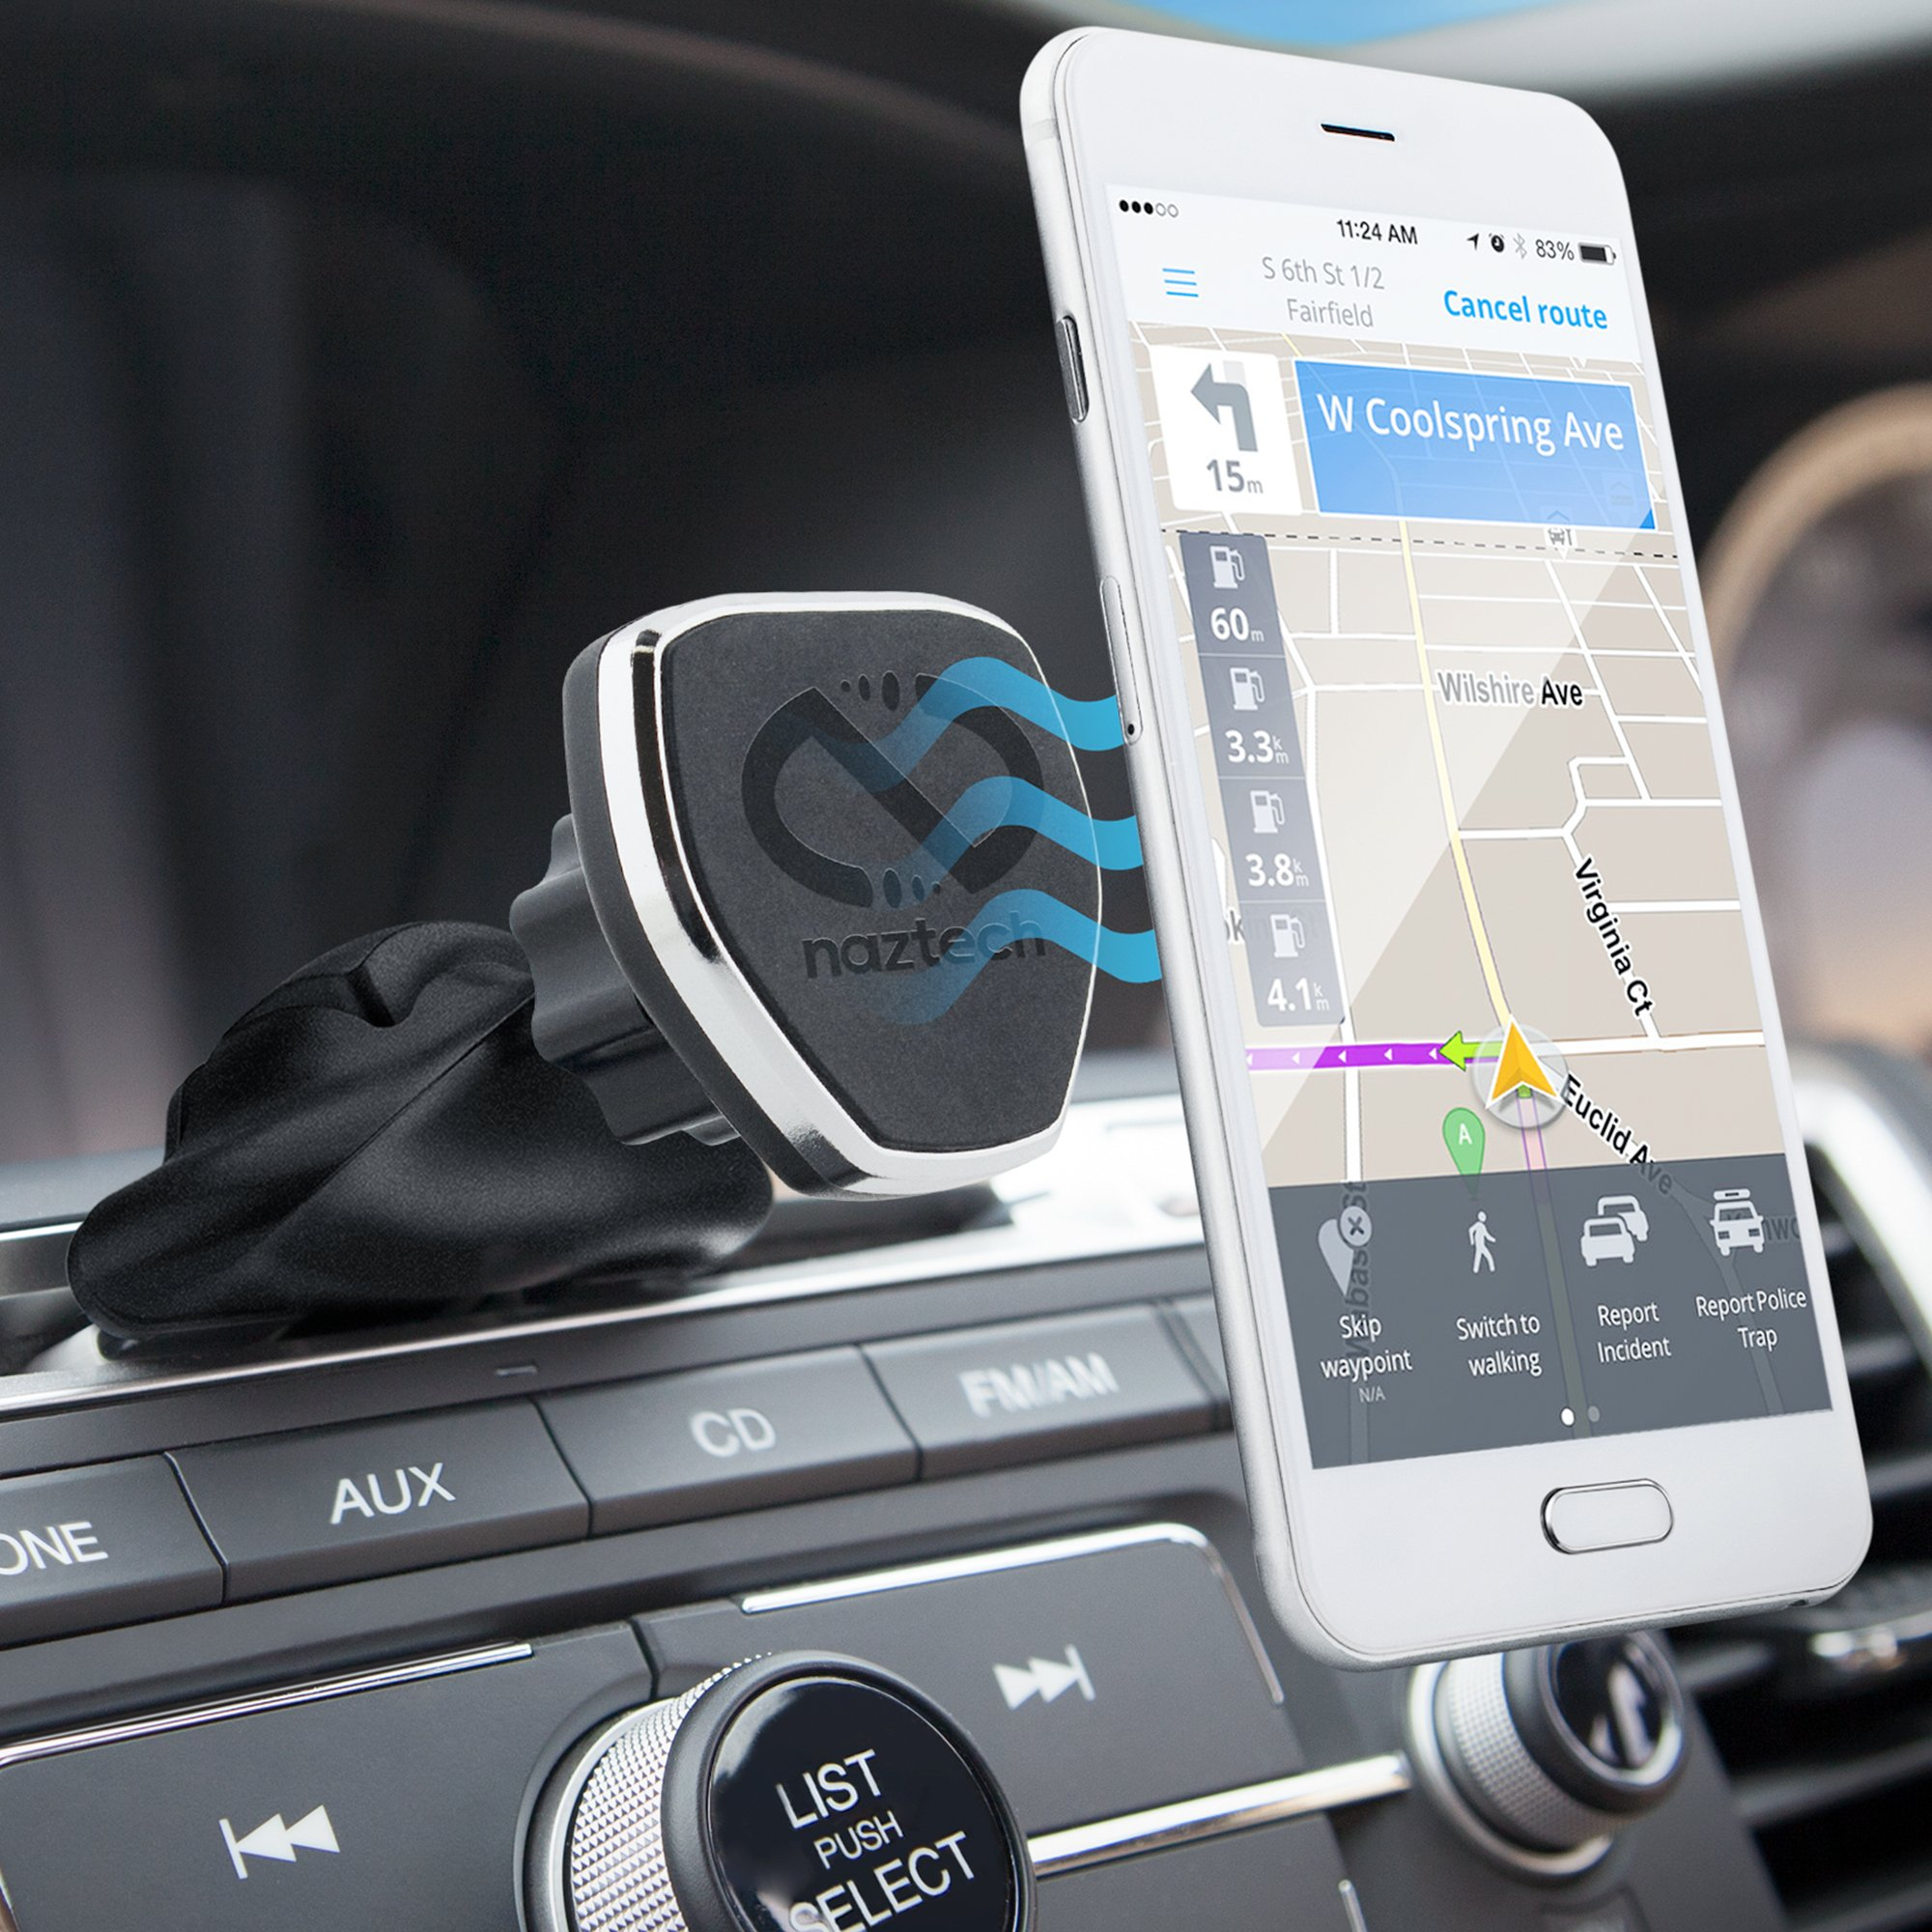 Naztech MagBuddy Universal Magnetic CD Slot, Car Phone Mount. Fully Adjustable Holder For Hands-free Phone Calls and GPS Use, For iPhone X/8/8 Plus, Samsung S9/S9+/Note 8/Smartphones & More by Naztech